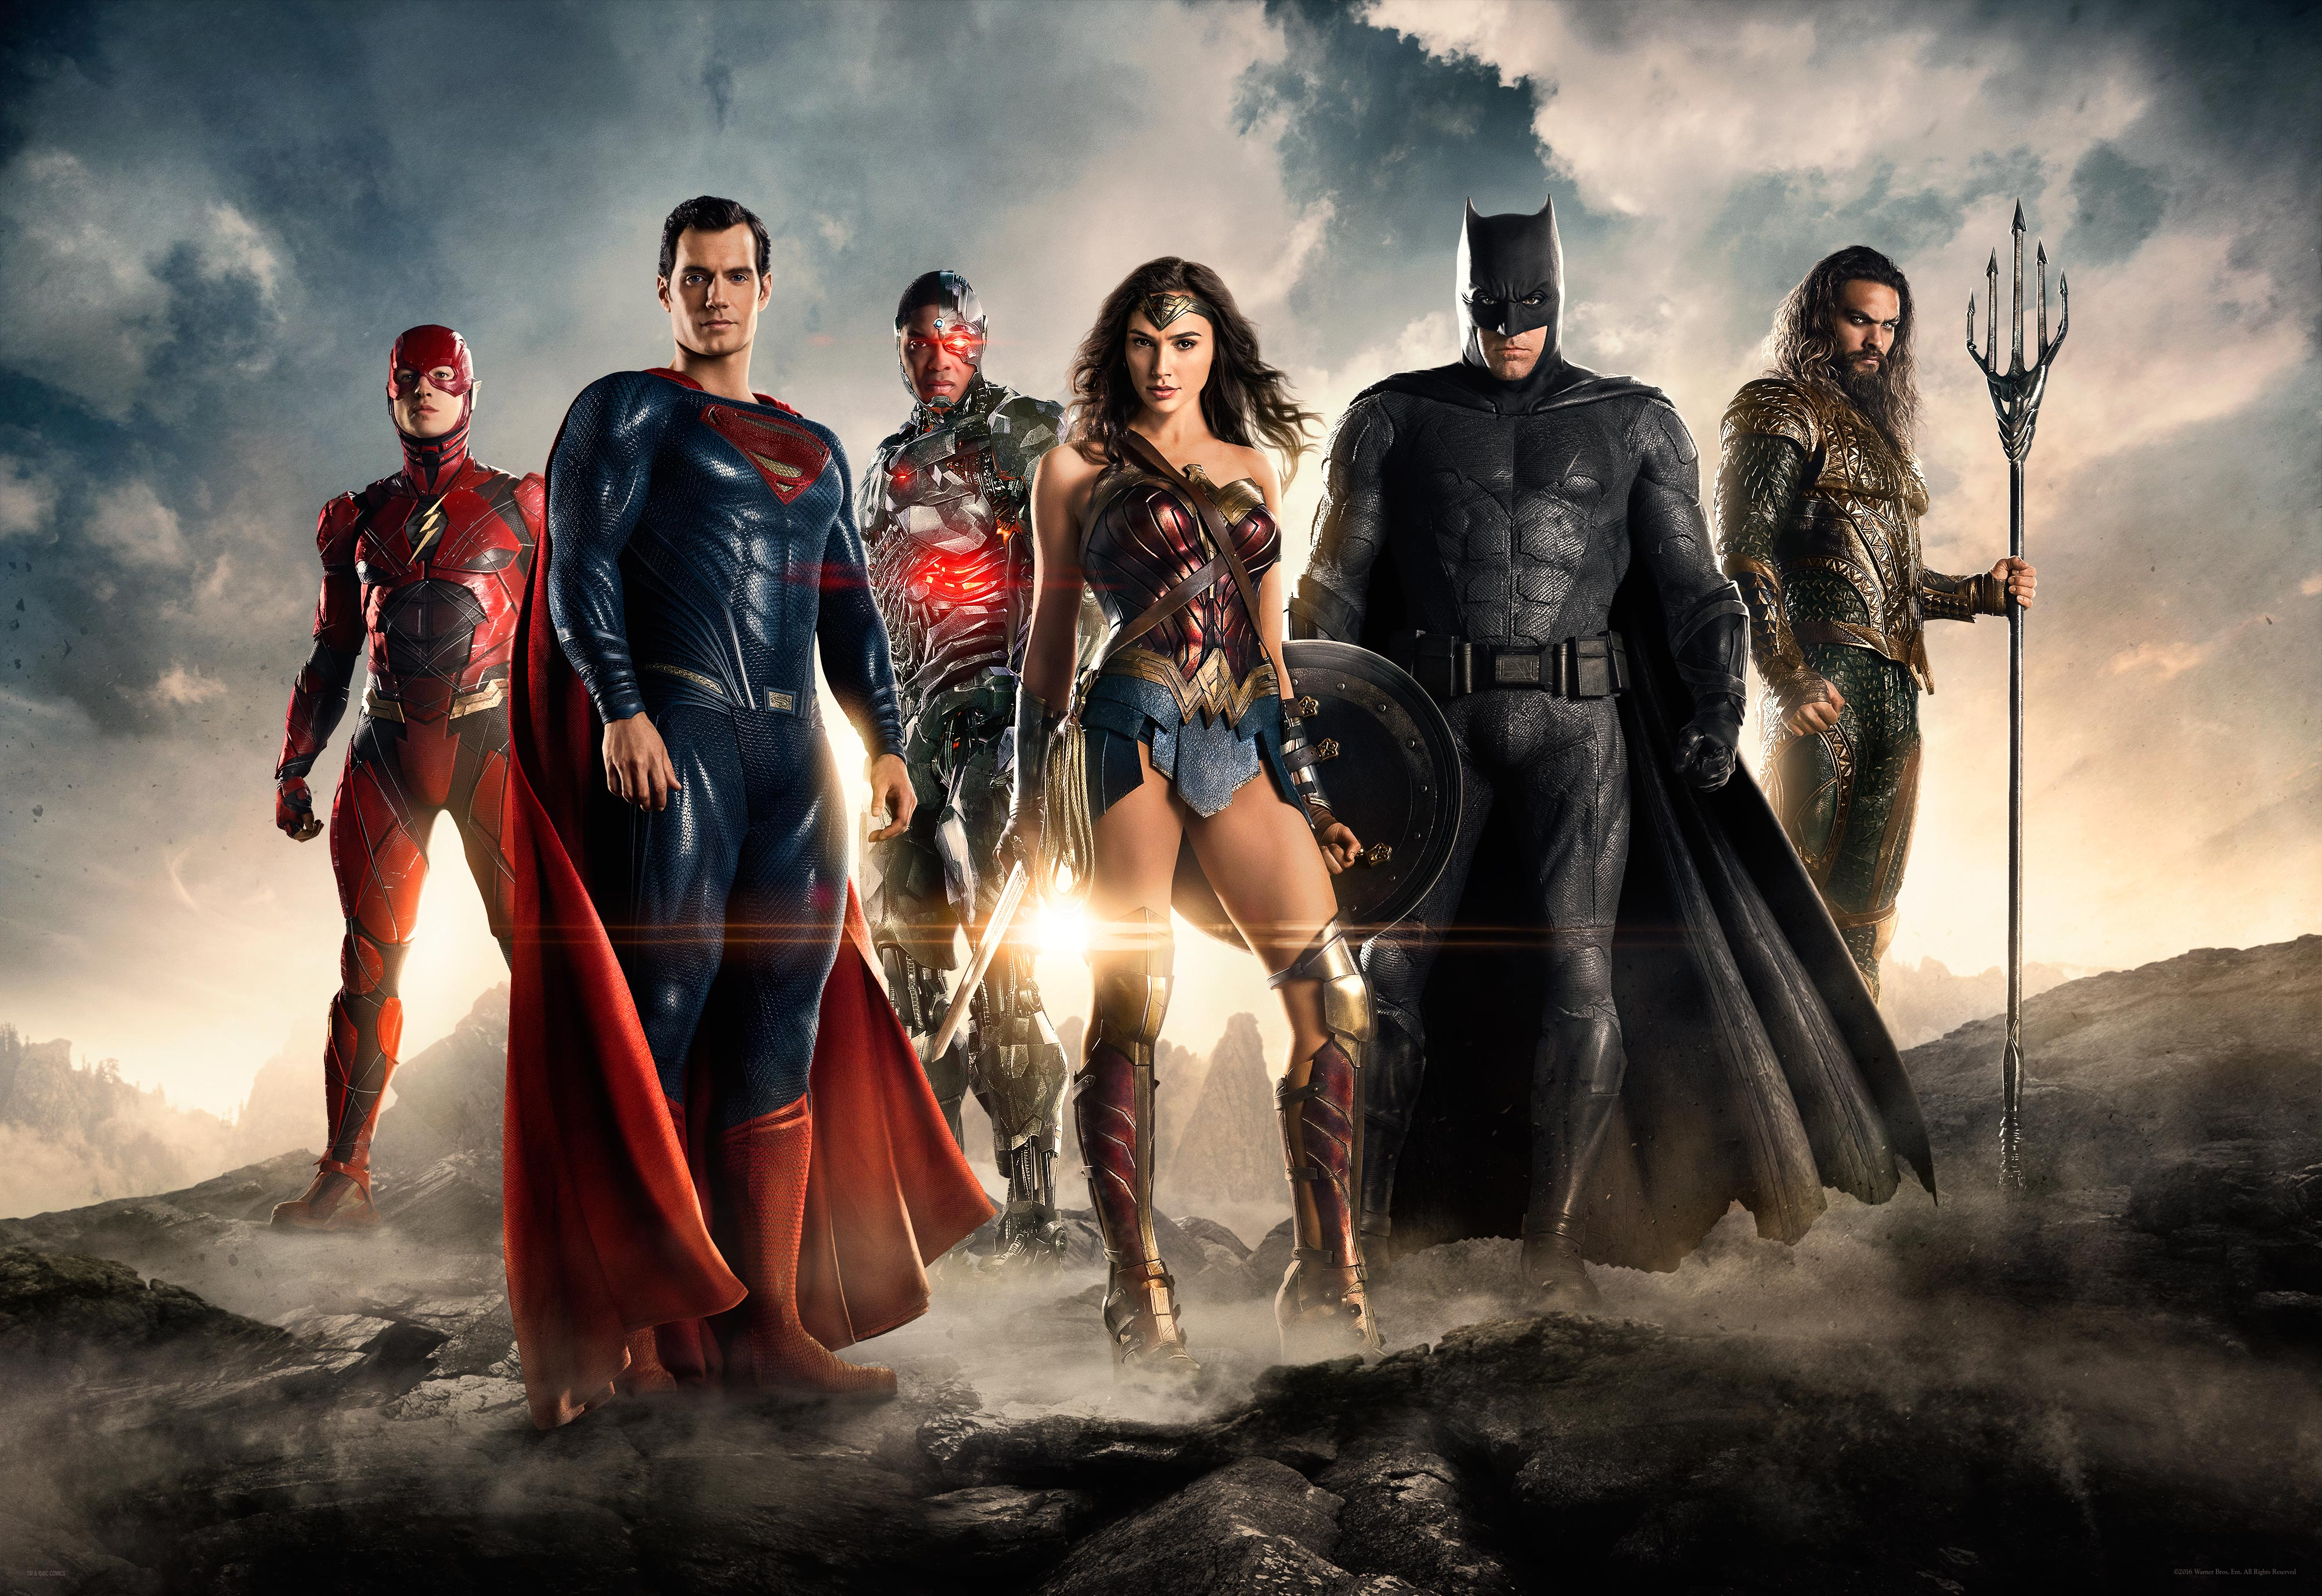 Justice League Synopsis Released